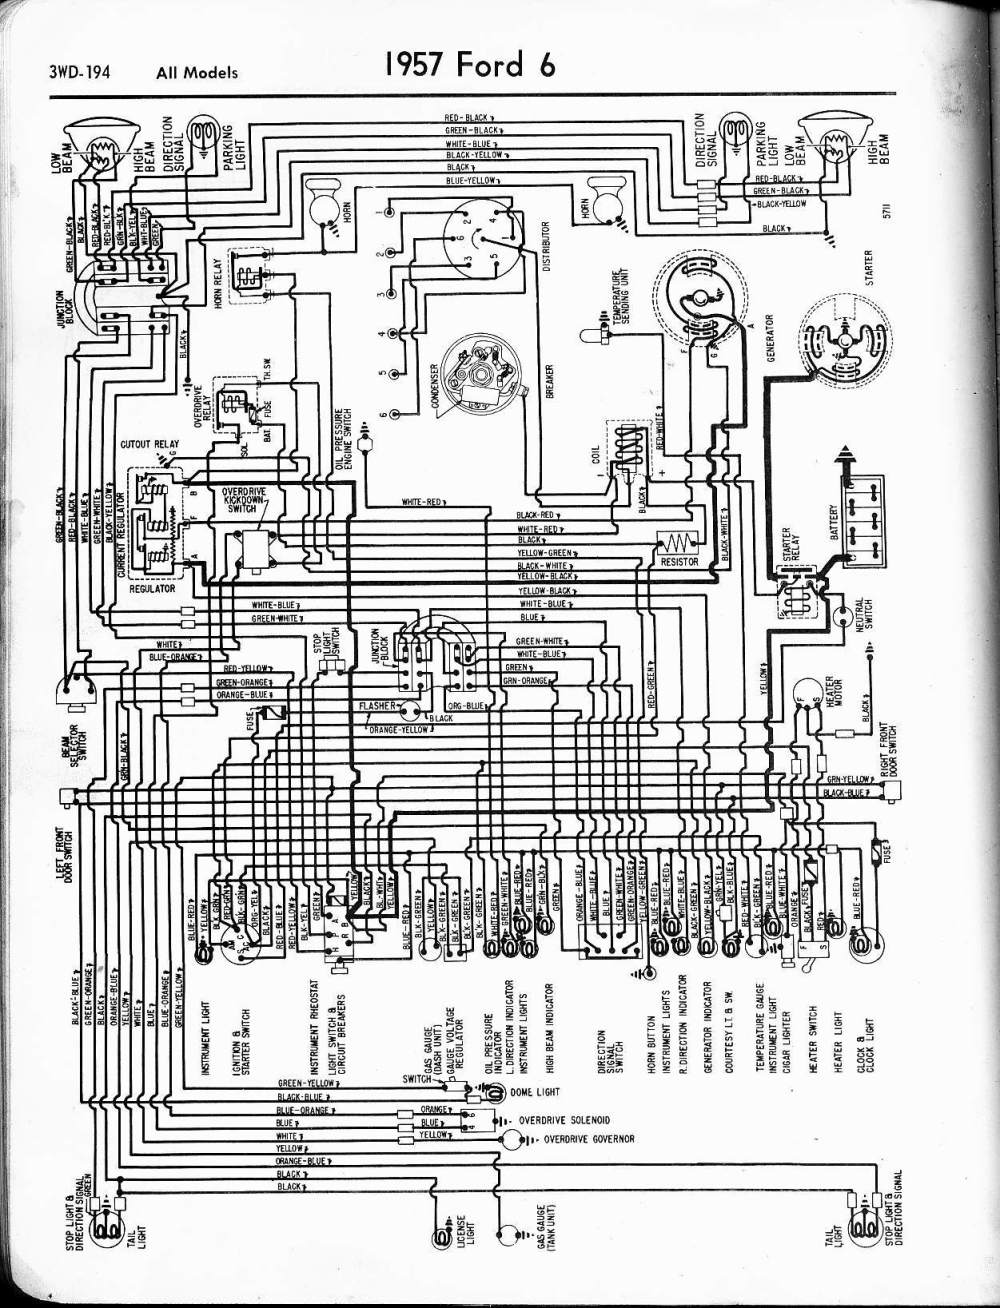 medium resolution of 1959 f100 engine diagram wiring diagram database1959 ford f100 wiring schematic wiring diagrams konsult 1959 f100